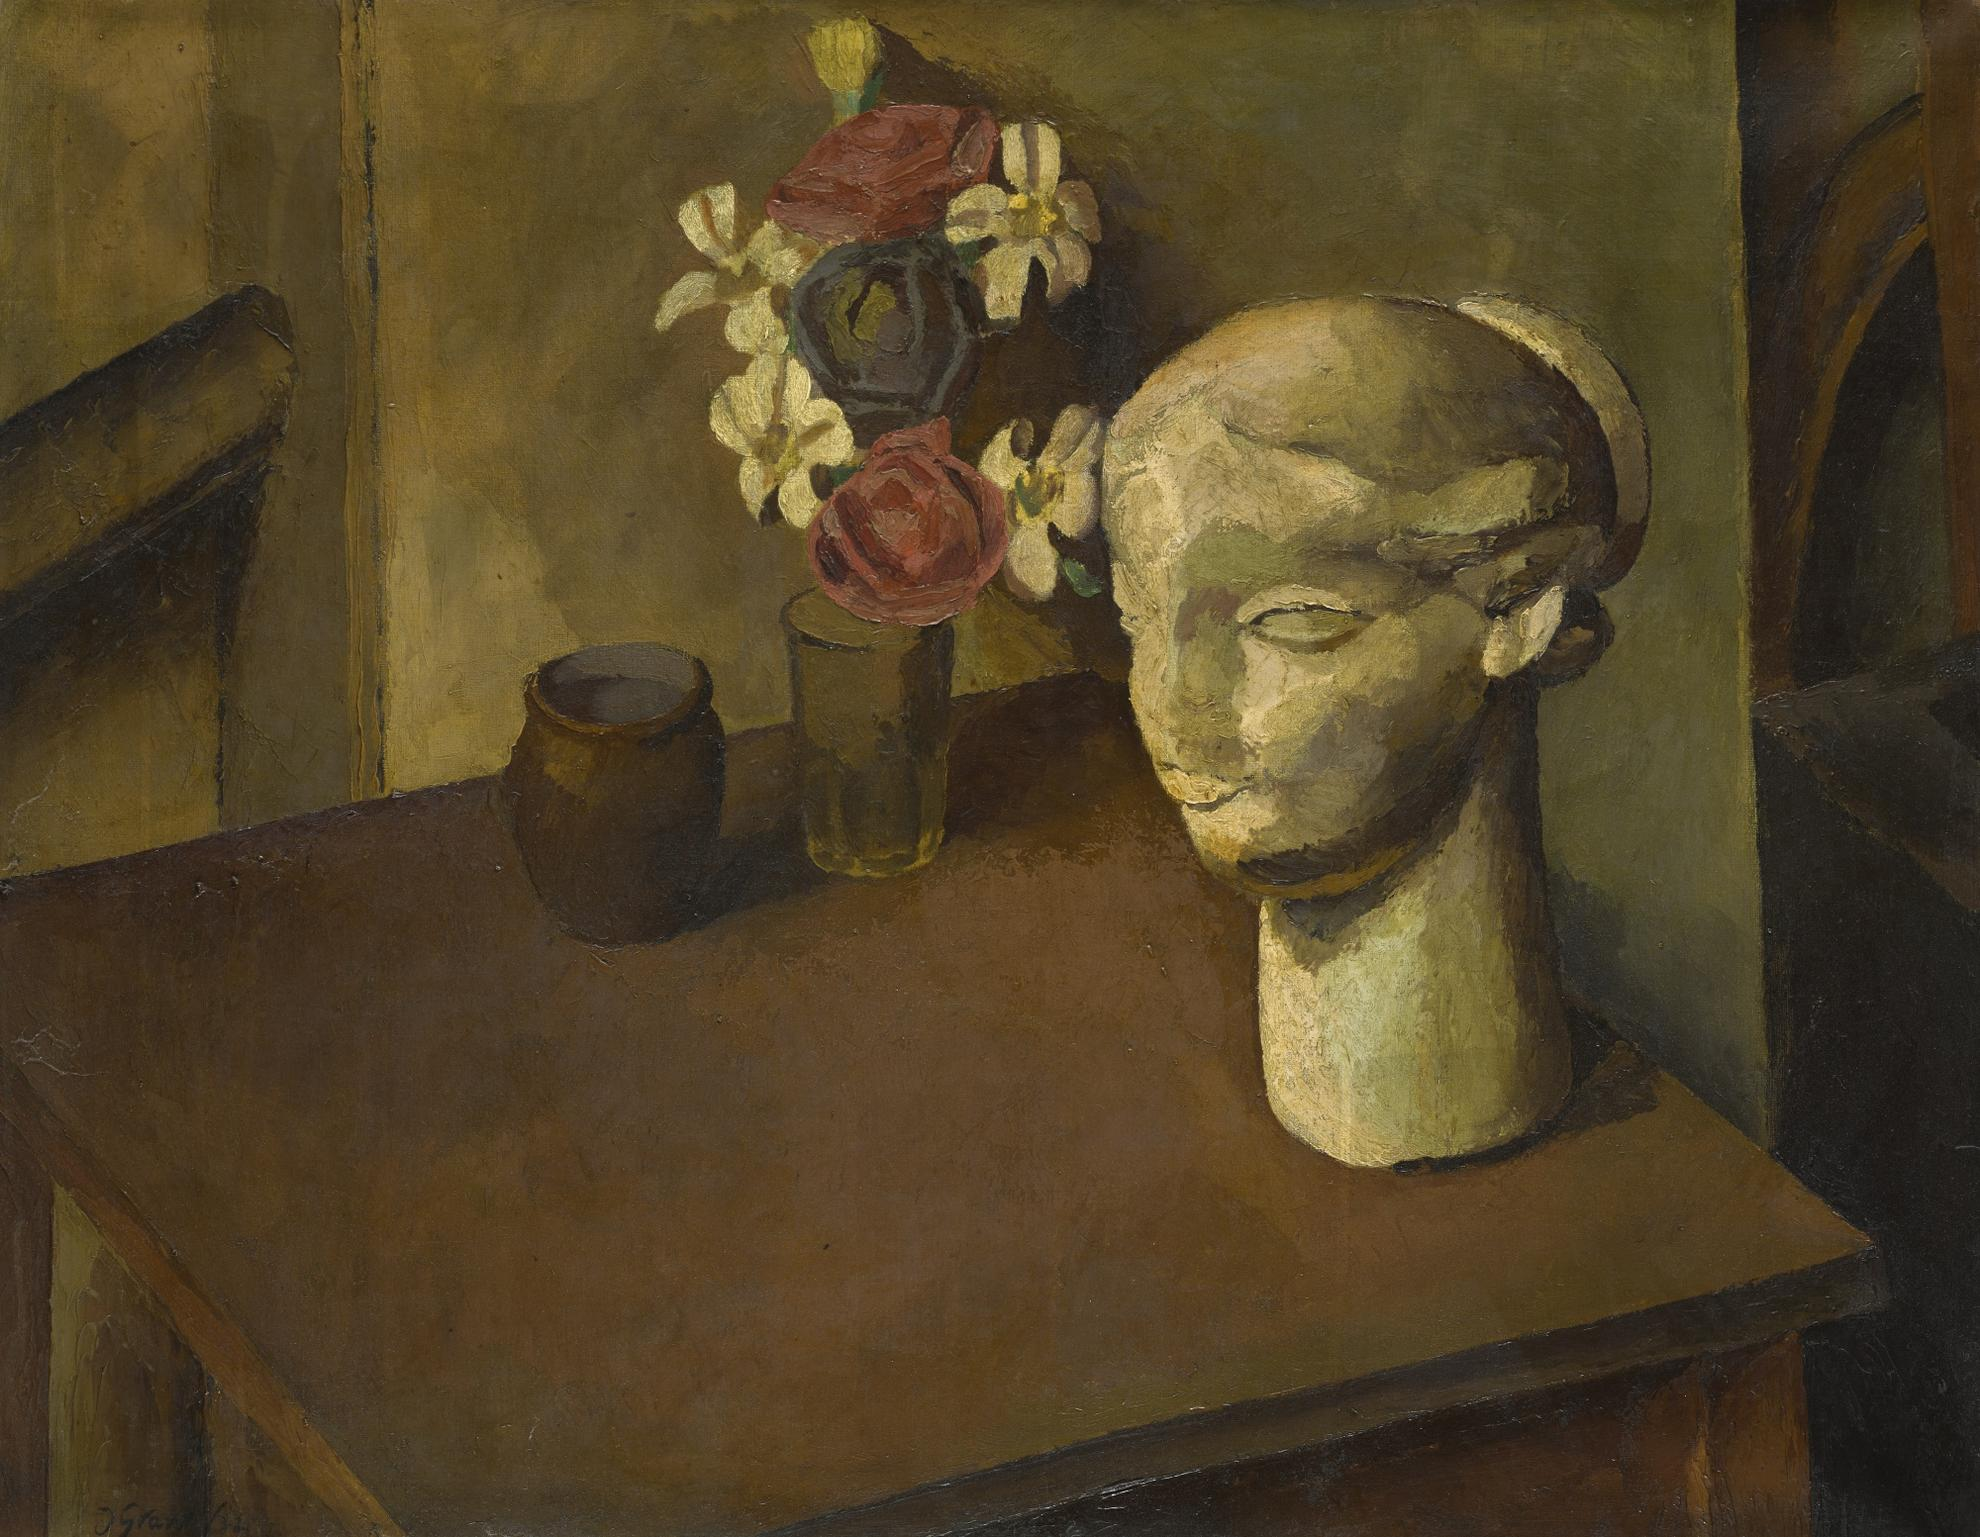 Duncan Grant-The Bust-1922